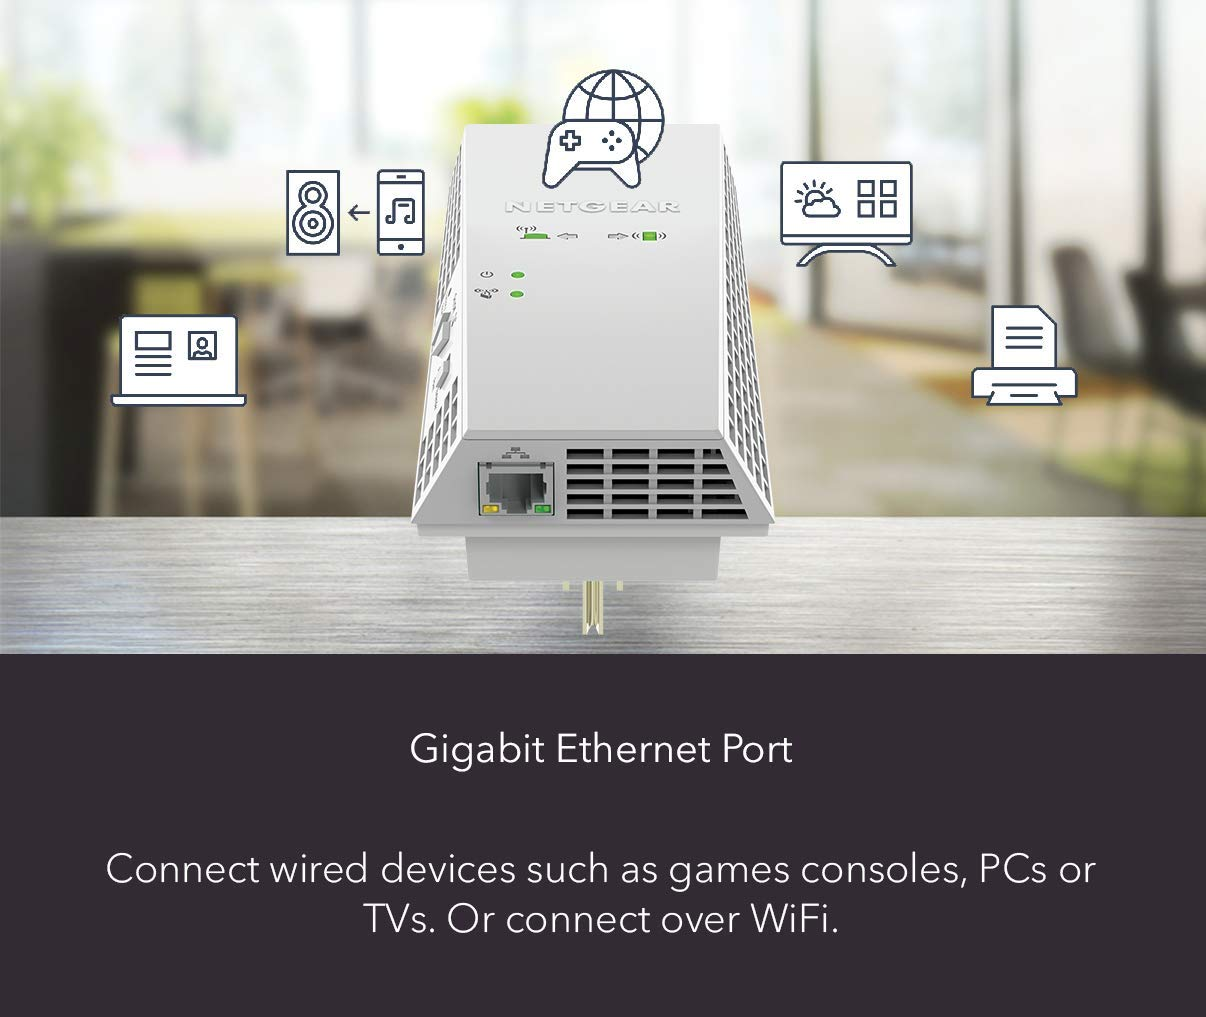 Works with Any WiFi Router EX6400 One WiFi Name Seamless Roaming ...